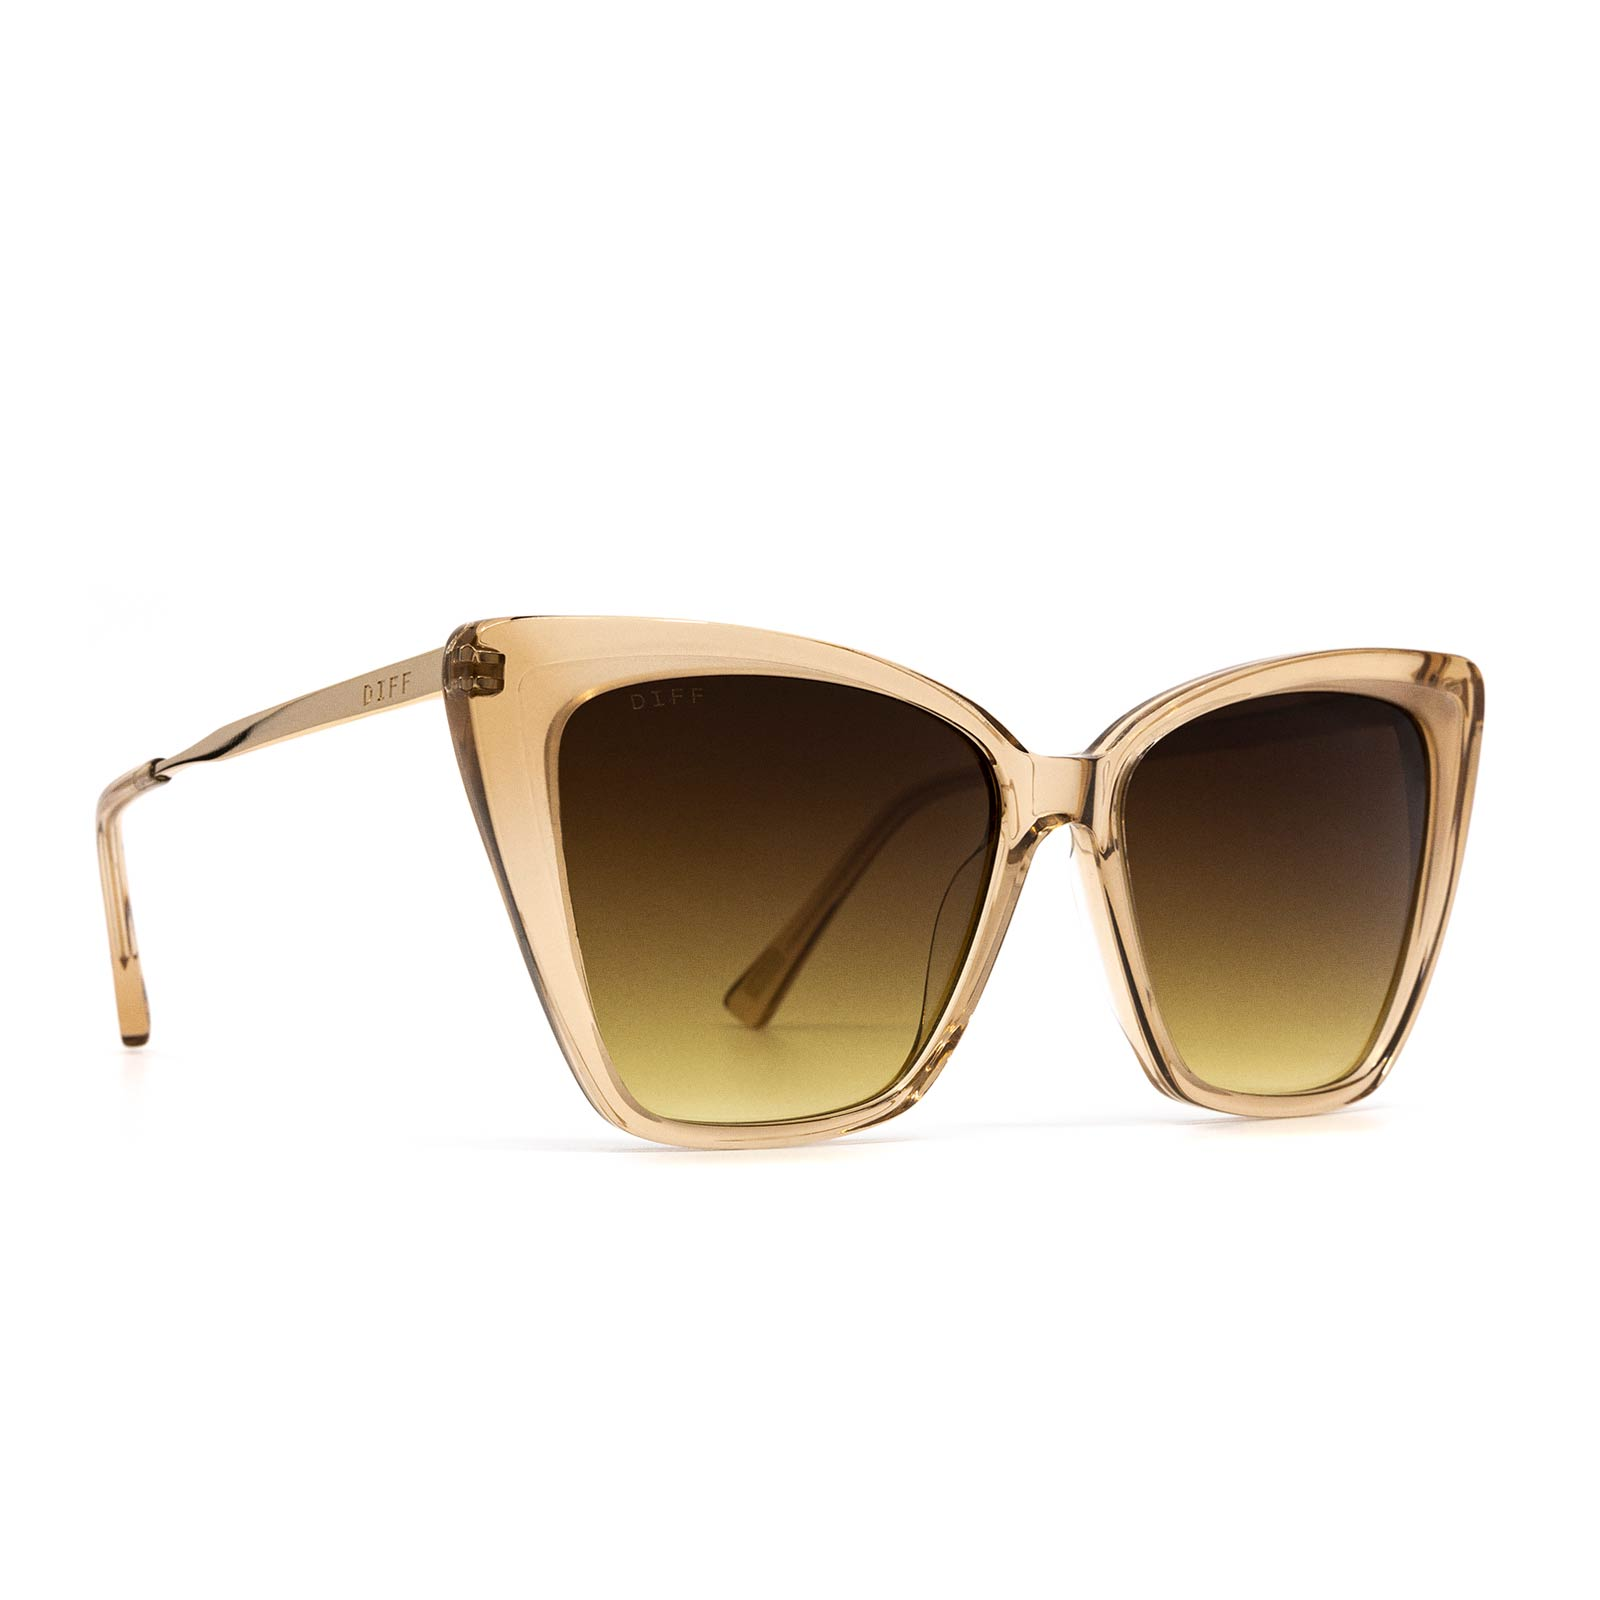 Becky II sunglasses with vintage crystal frame and brown gradient lens- angle view